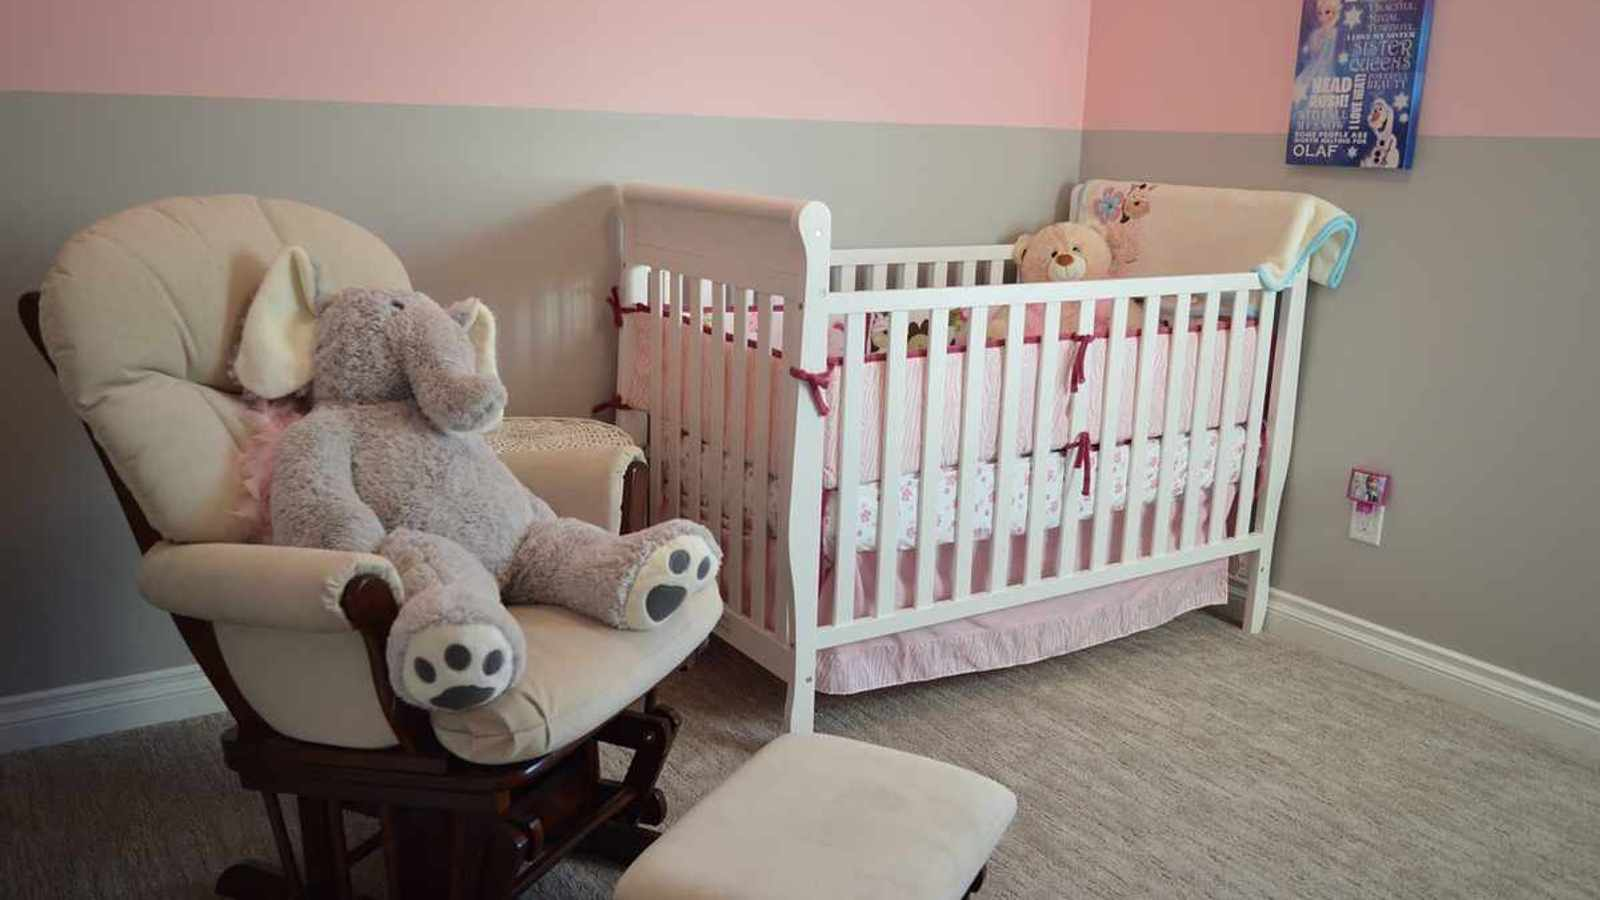 6 DREAMY DÉCOR TRENDS FOR YOUR LITTLE ONE'S NURSERY